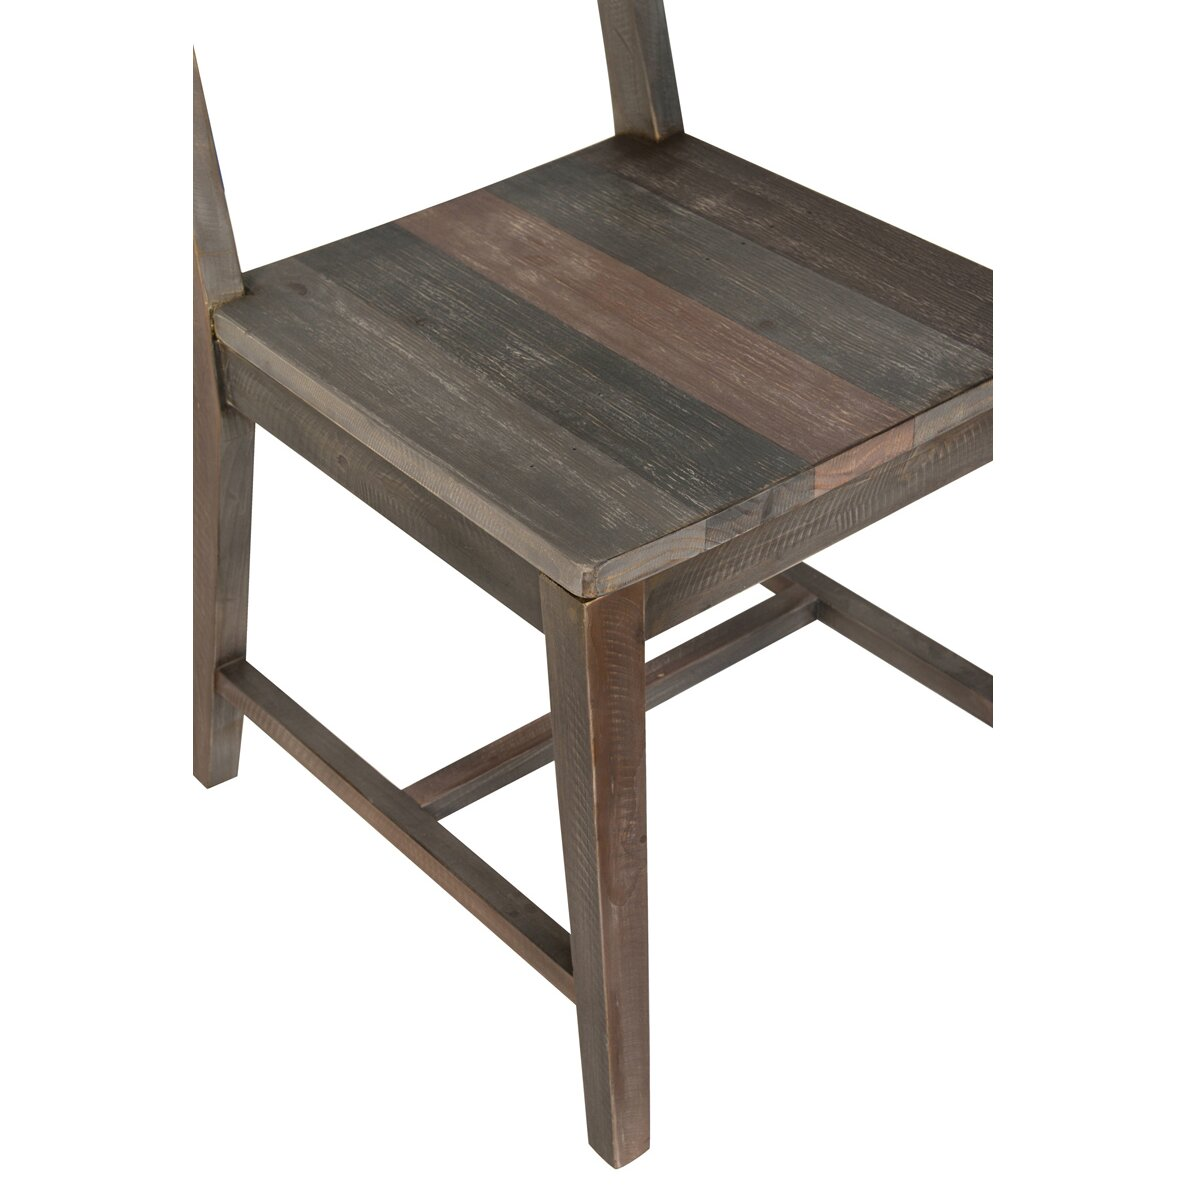 Laurel foundry modern farmhouse alycia side chair wayfair for Modern farmhouse dining chairs